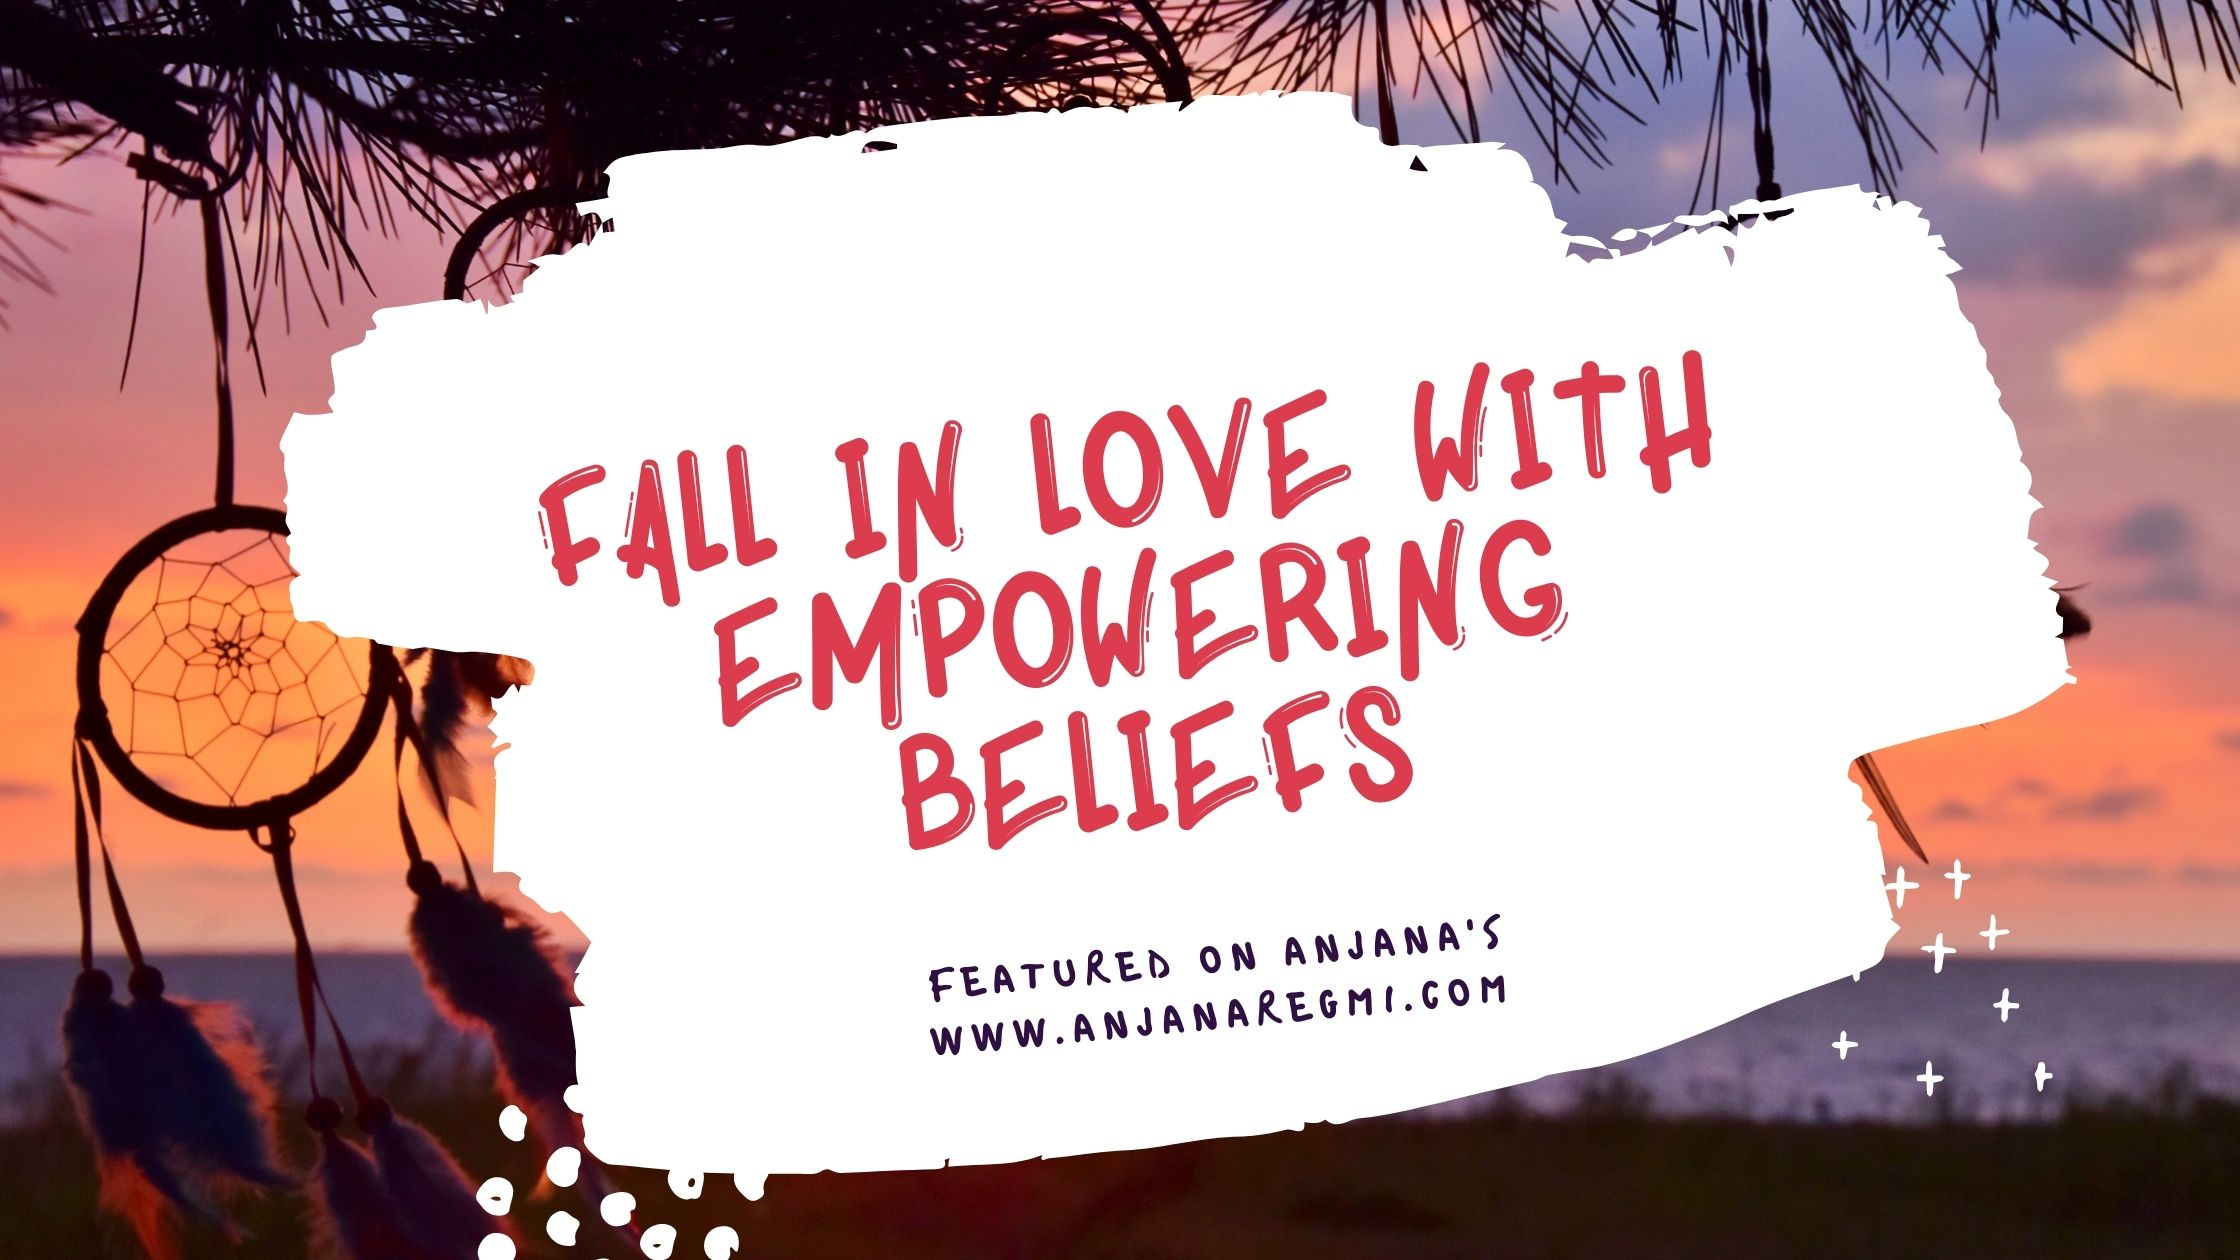 Fall in love with empowering beliefs